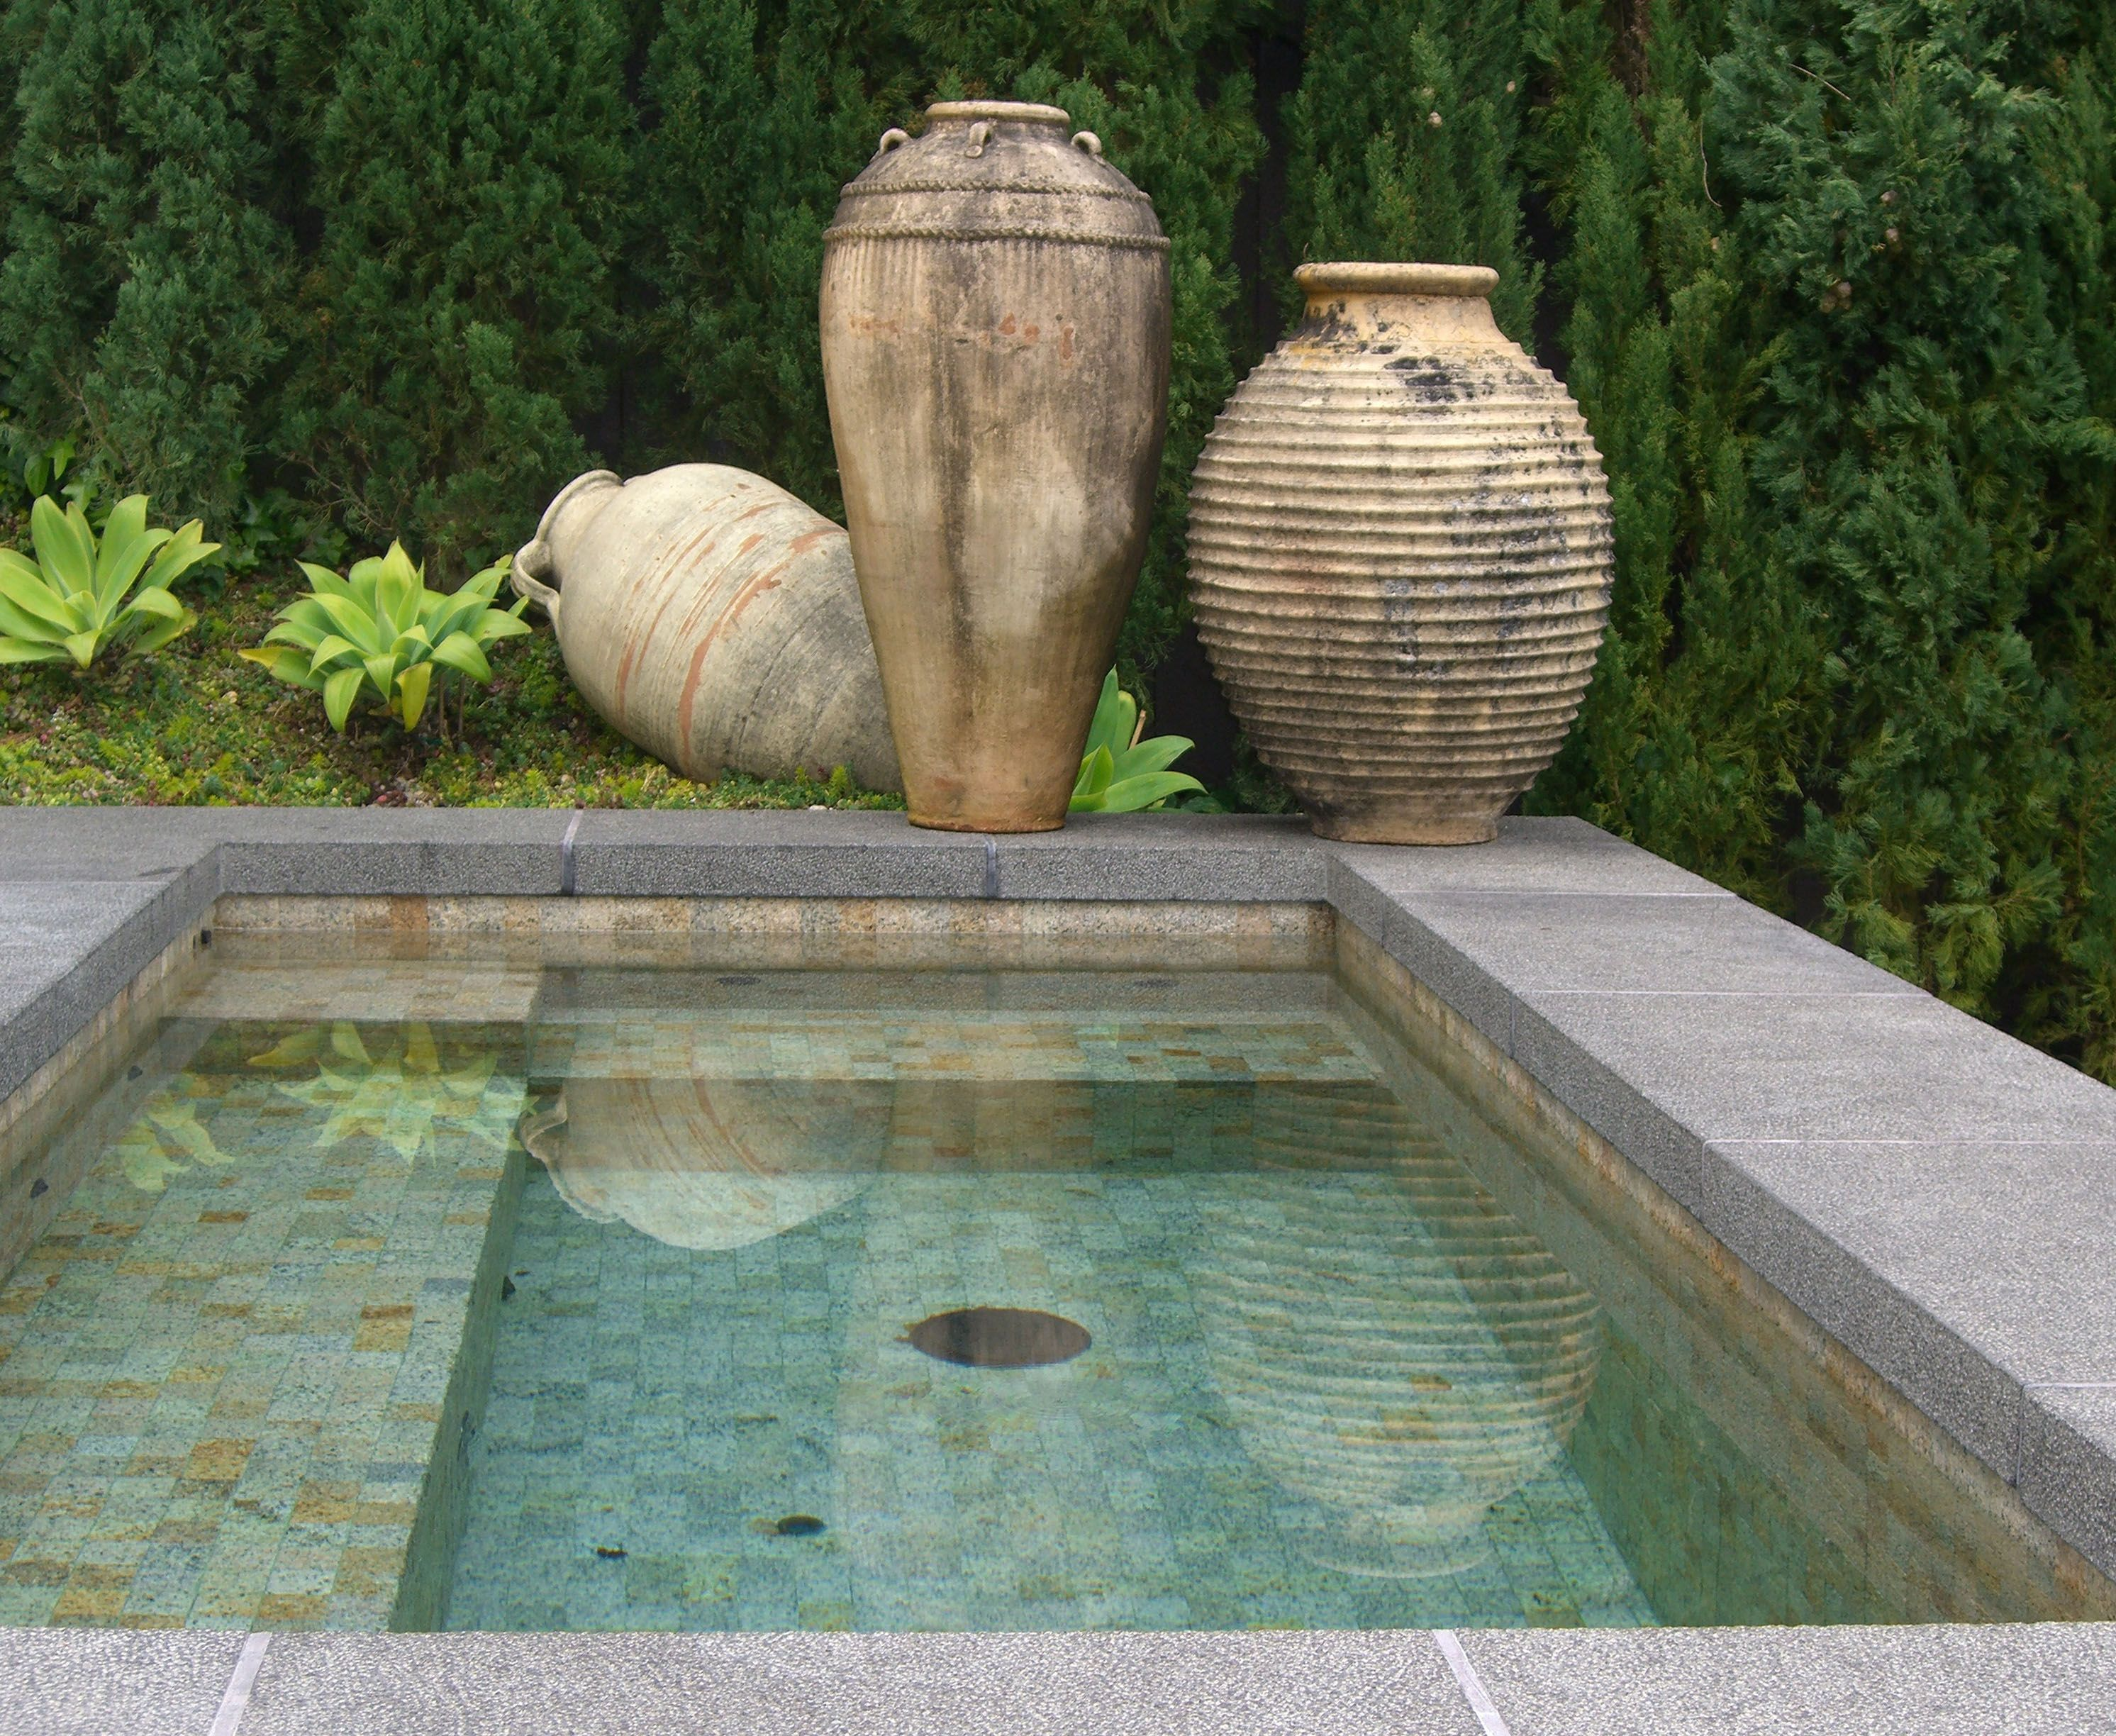 images of outdoor soaking tubs and pools - Google Search